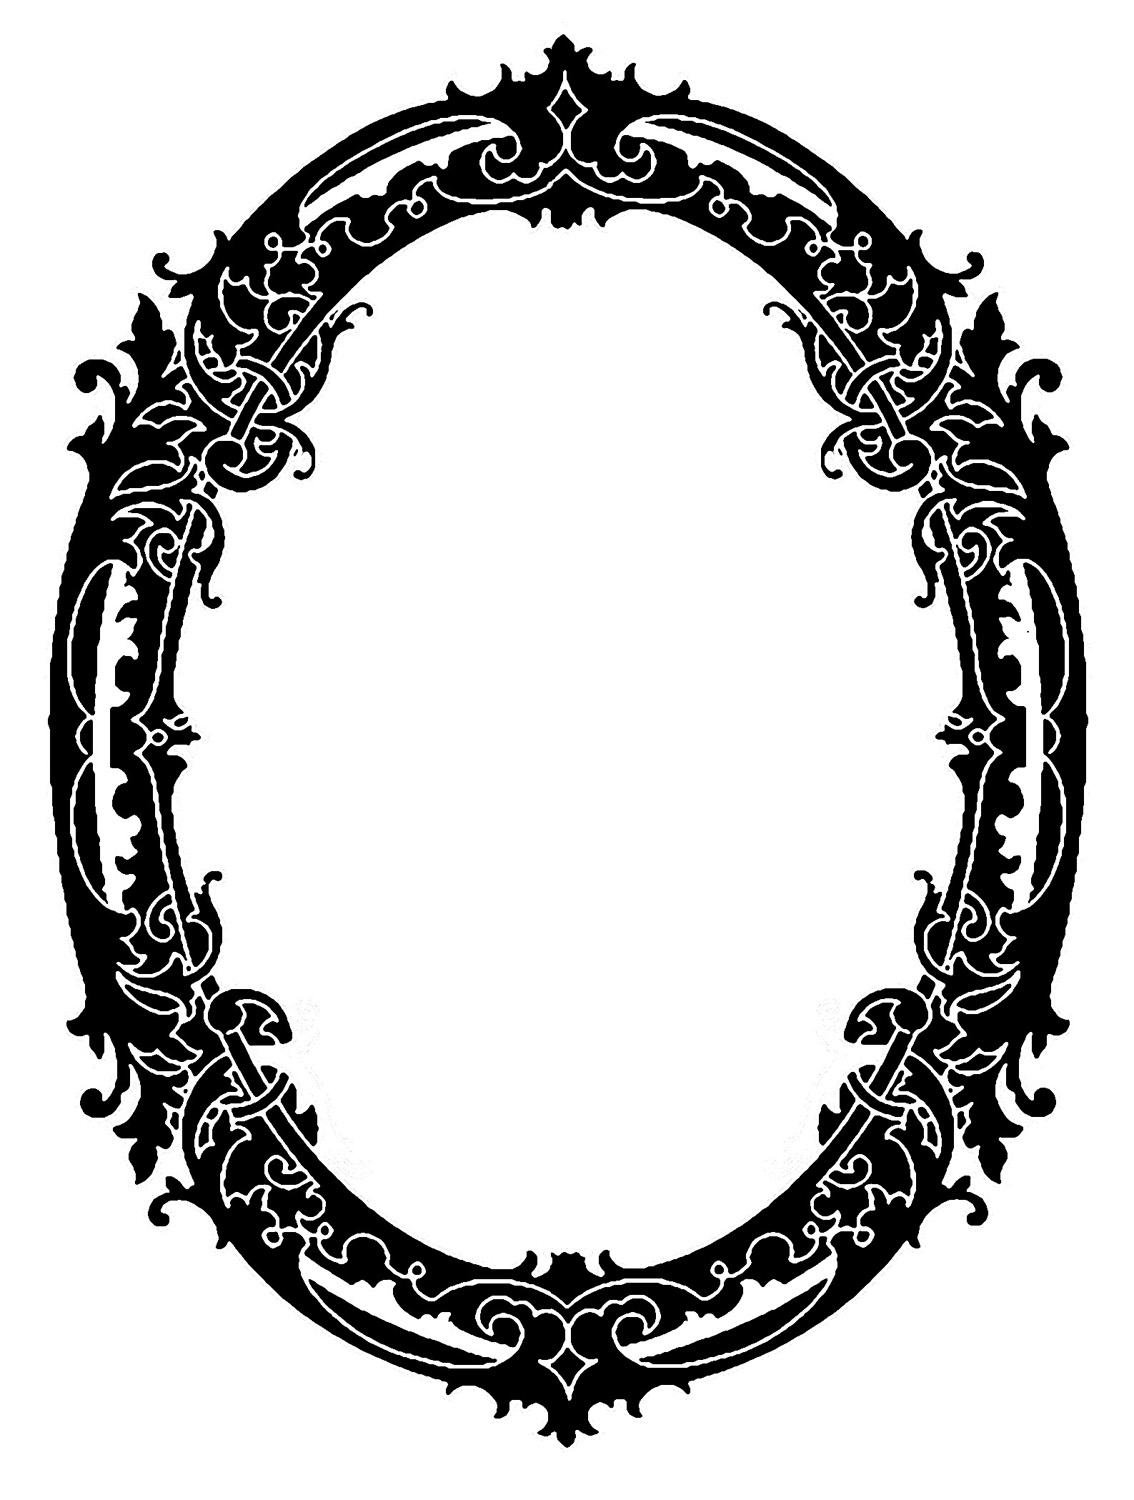 1134x1500 Vintage Clip Art Stunning Silhouette Frames Christmas The For Oval